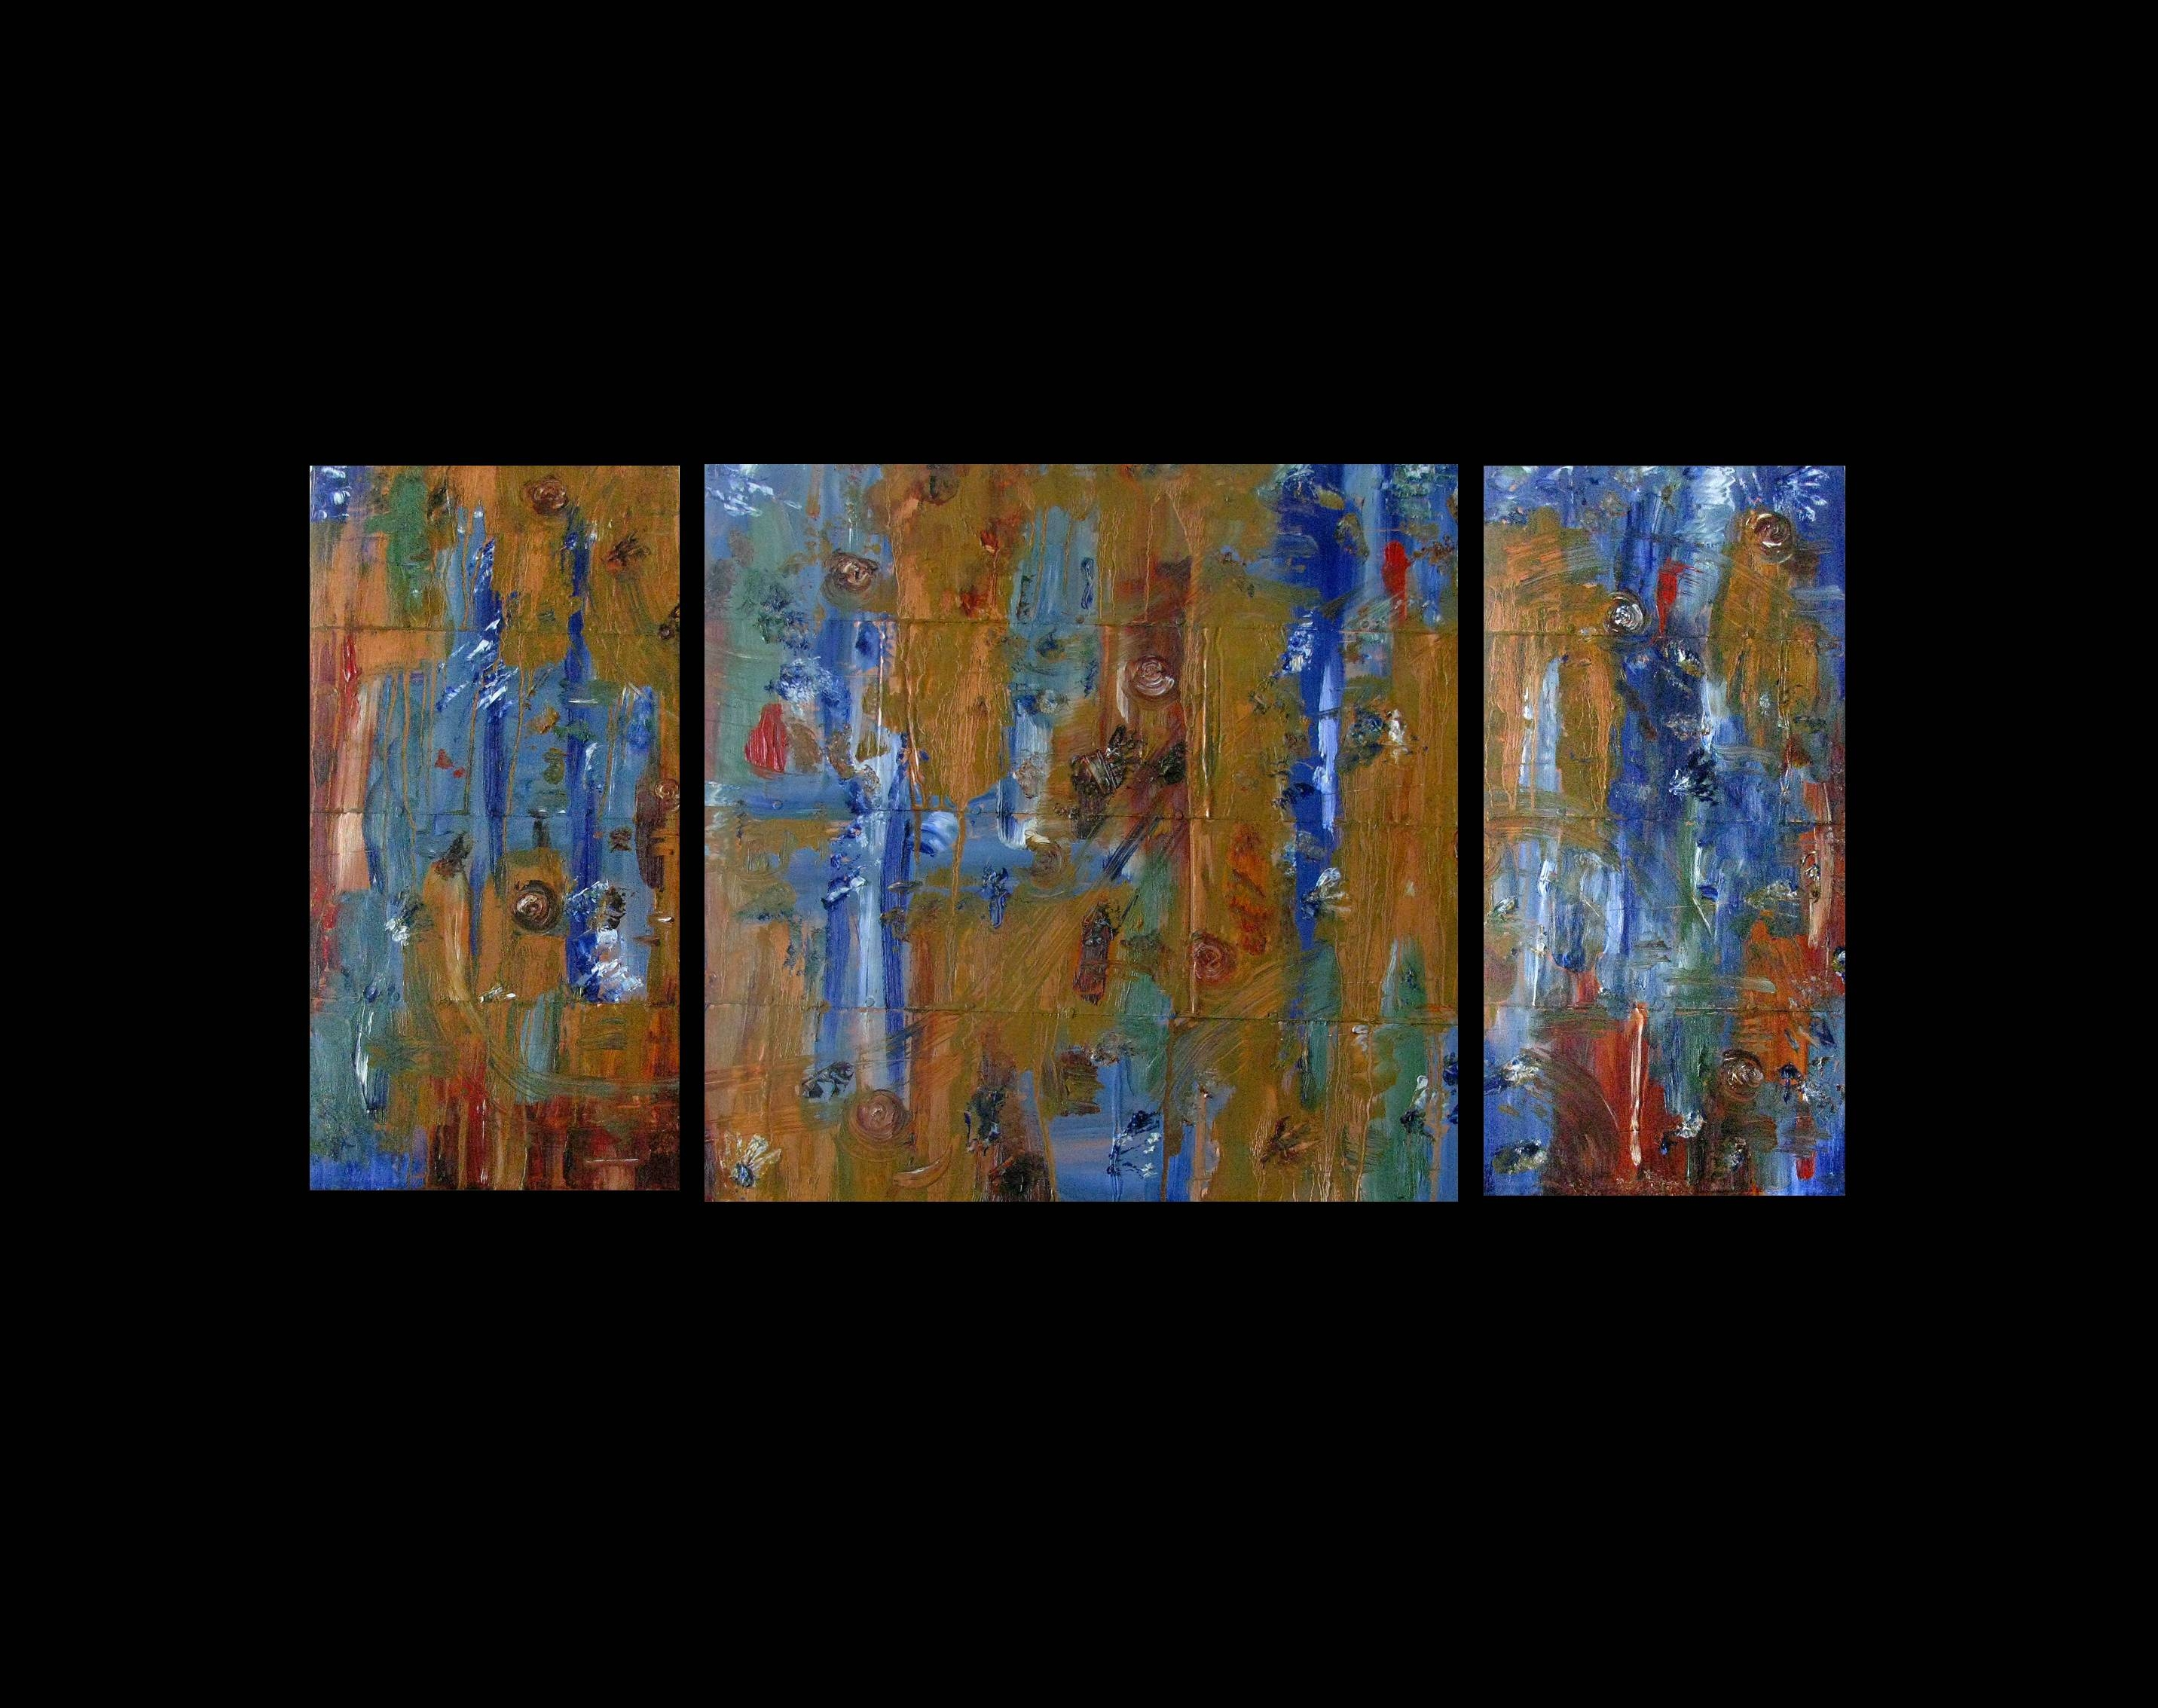 Paintings For Sale | Abstract Triptych,original Art For Sale,drip Throughout Most Current Triptych Art For Sale (View 8 of 20)